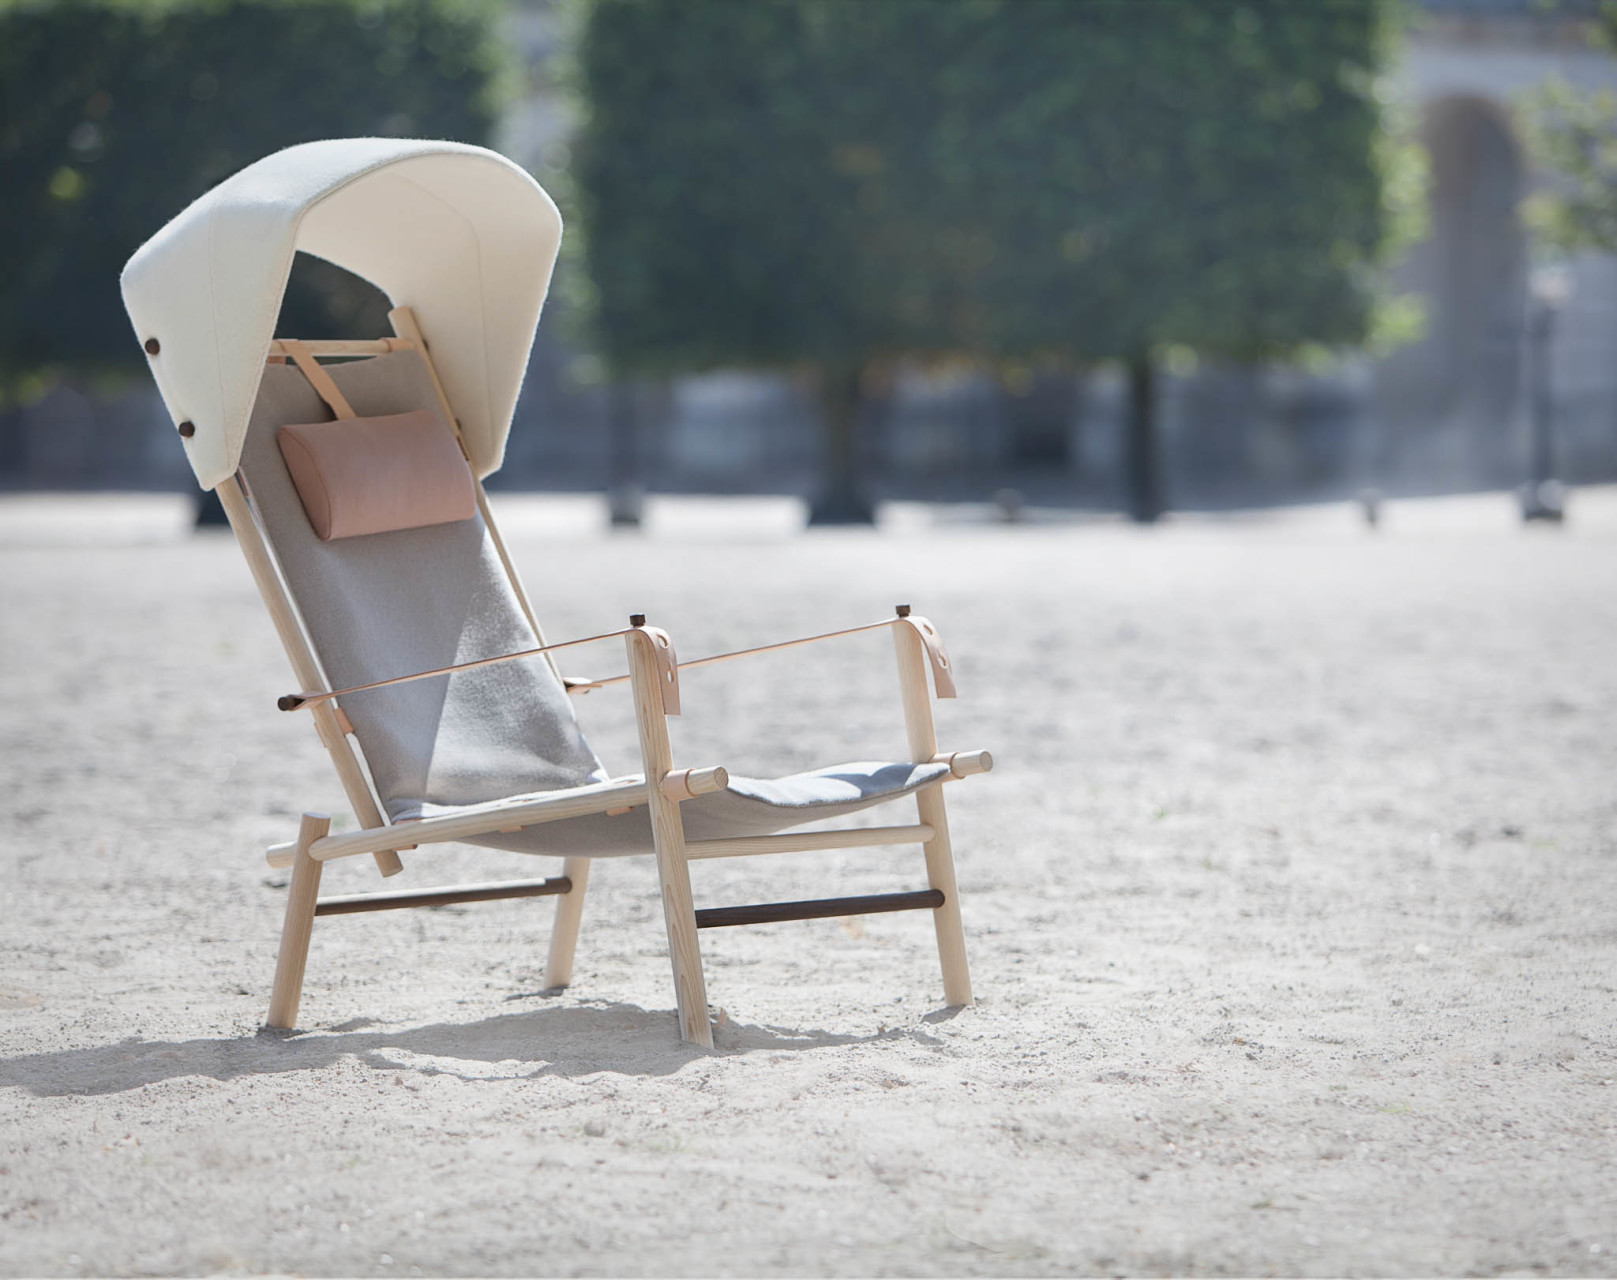 Chair designed by Lisbeth Kamstrup-Holm